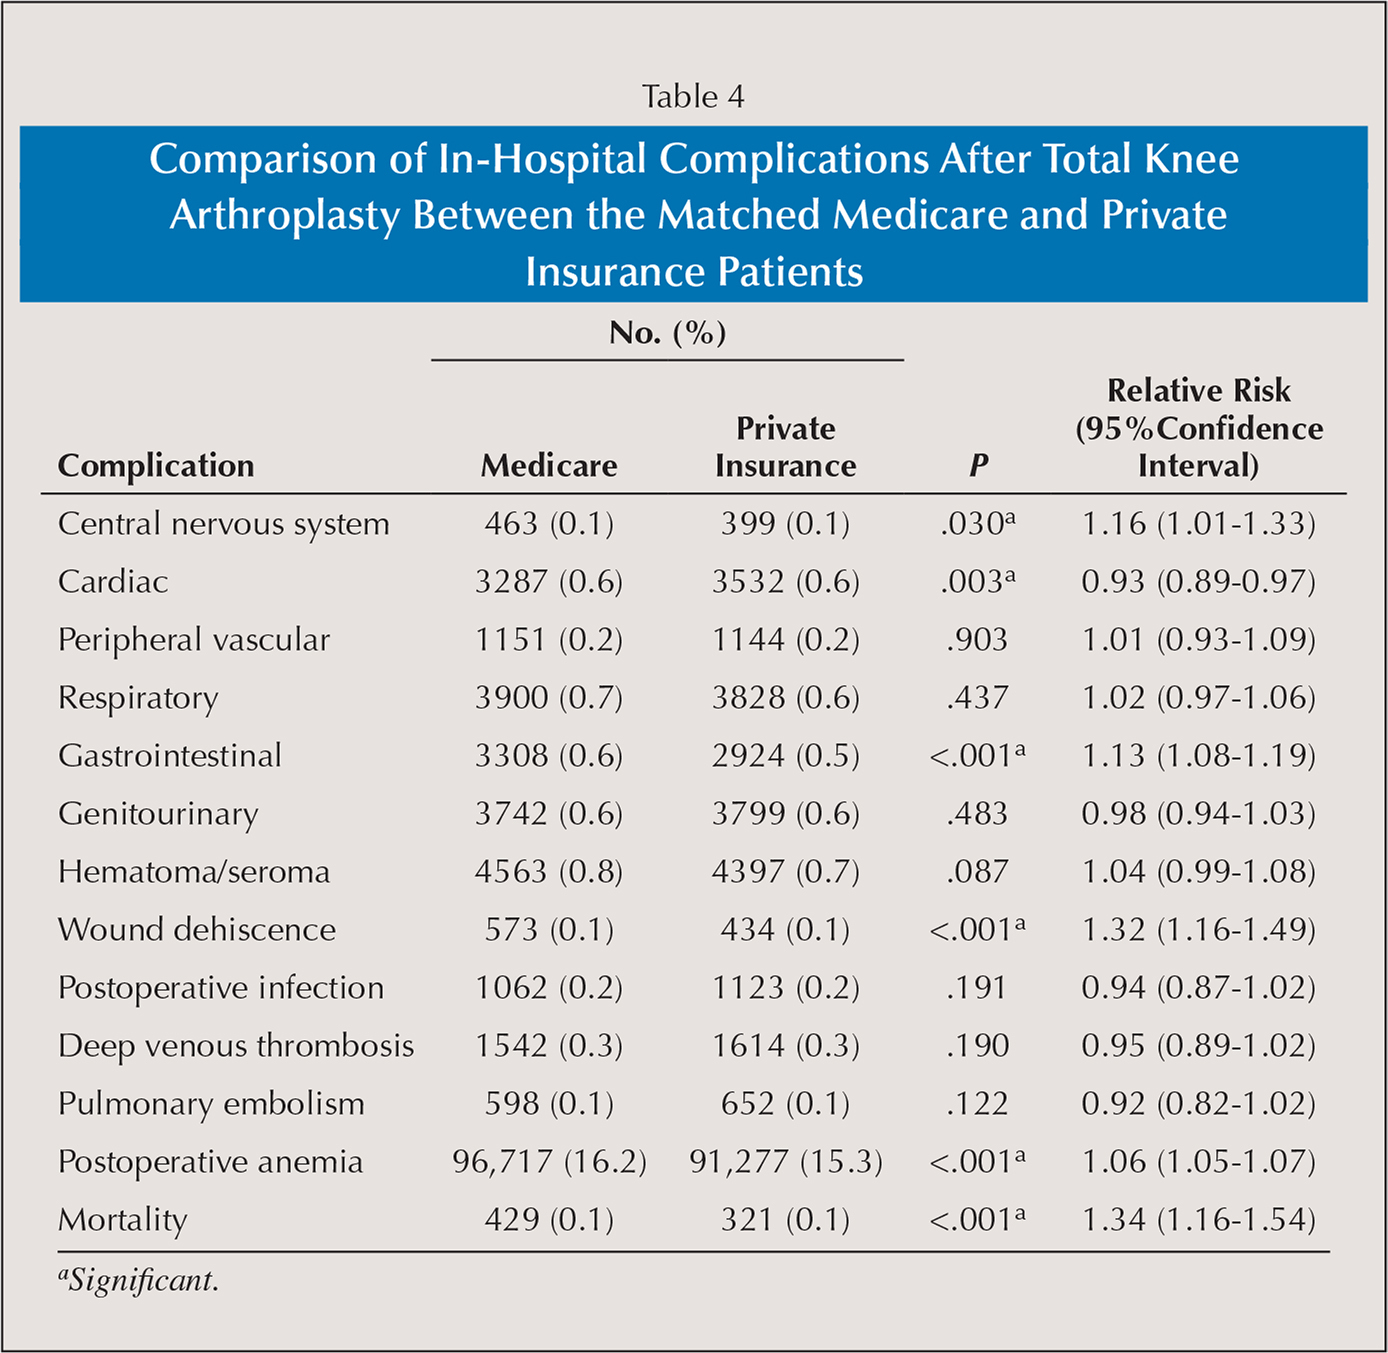 Comparison of In-Hospital Complications After Total Knee Arthroplasty Between the Matched Medicare and Private Insurance Patients